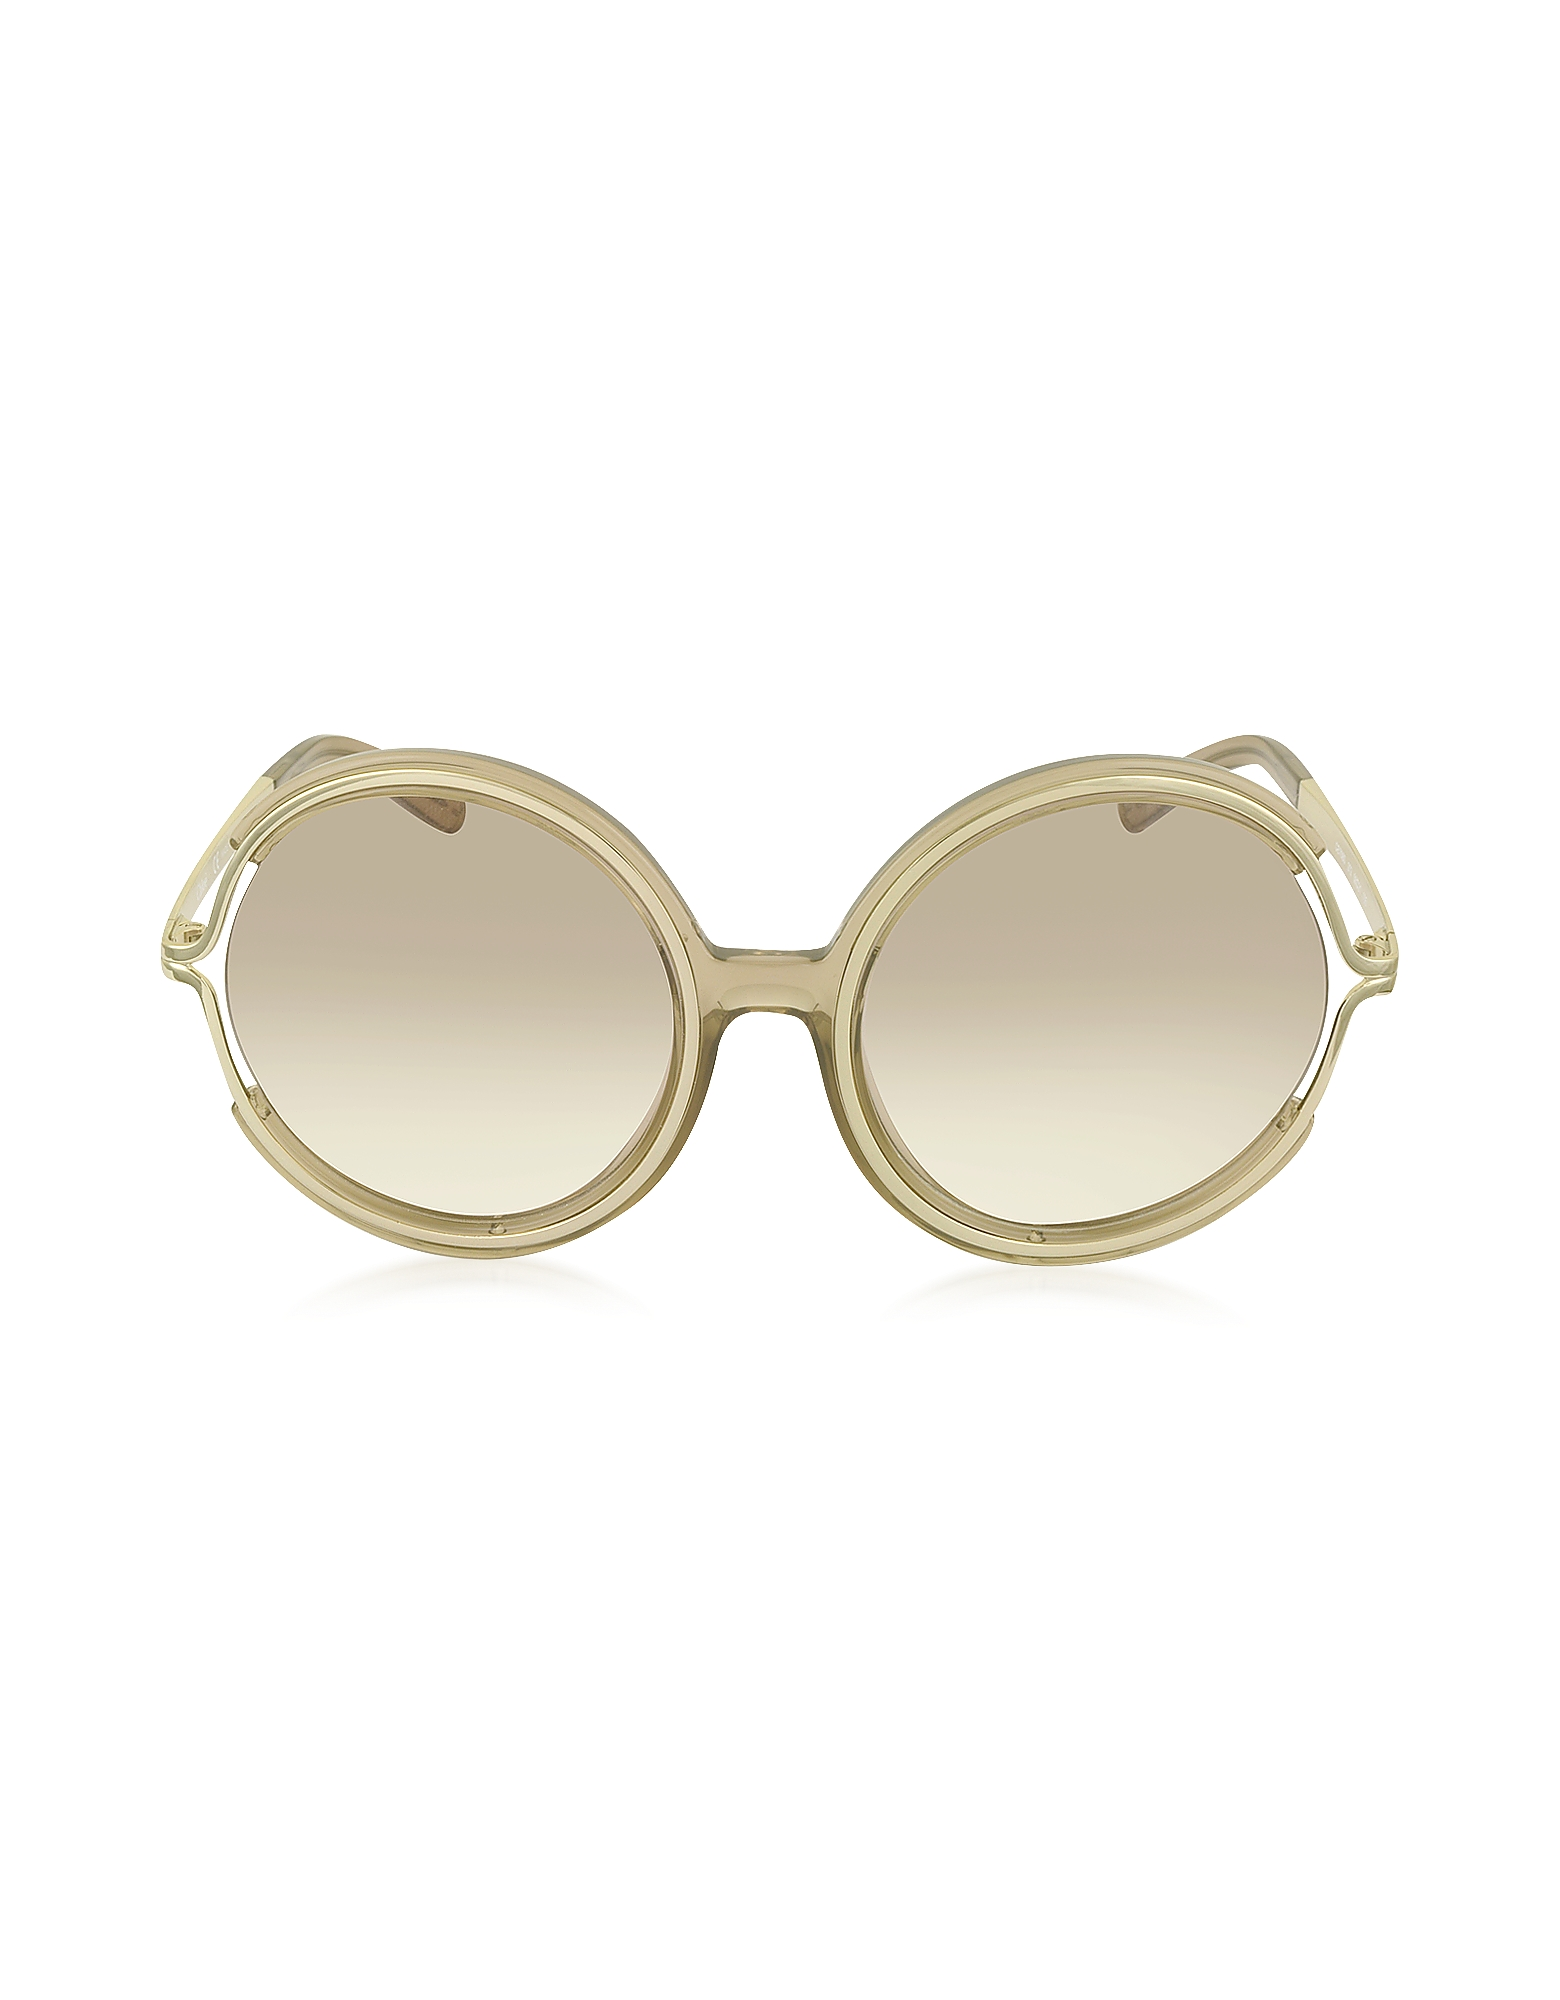 Chloe Sunglasses, JAYME CE 708S 272 Light Brown Acetate and Gold Metal Round Women's Sunglasses